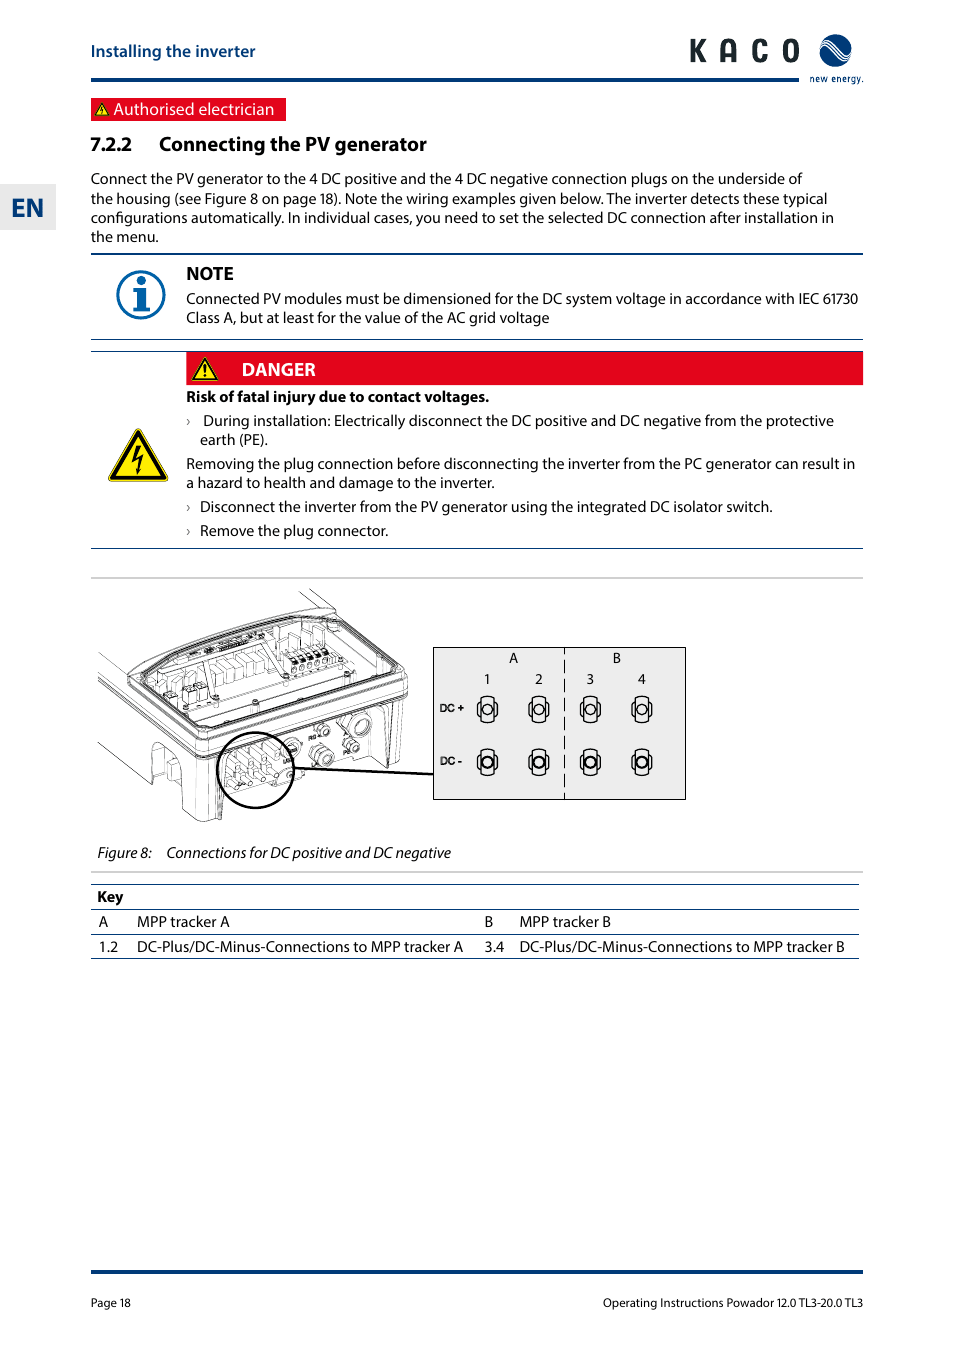 medium resolution of 2 connecting the pv generator kaco powador 10 0 20 0 tl3 user manual page 18 56